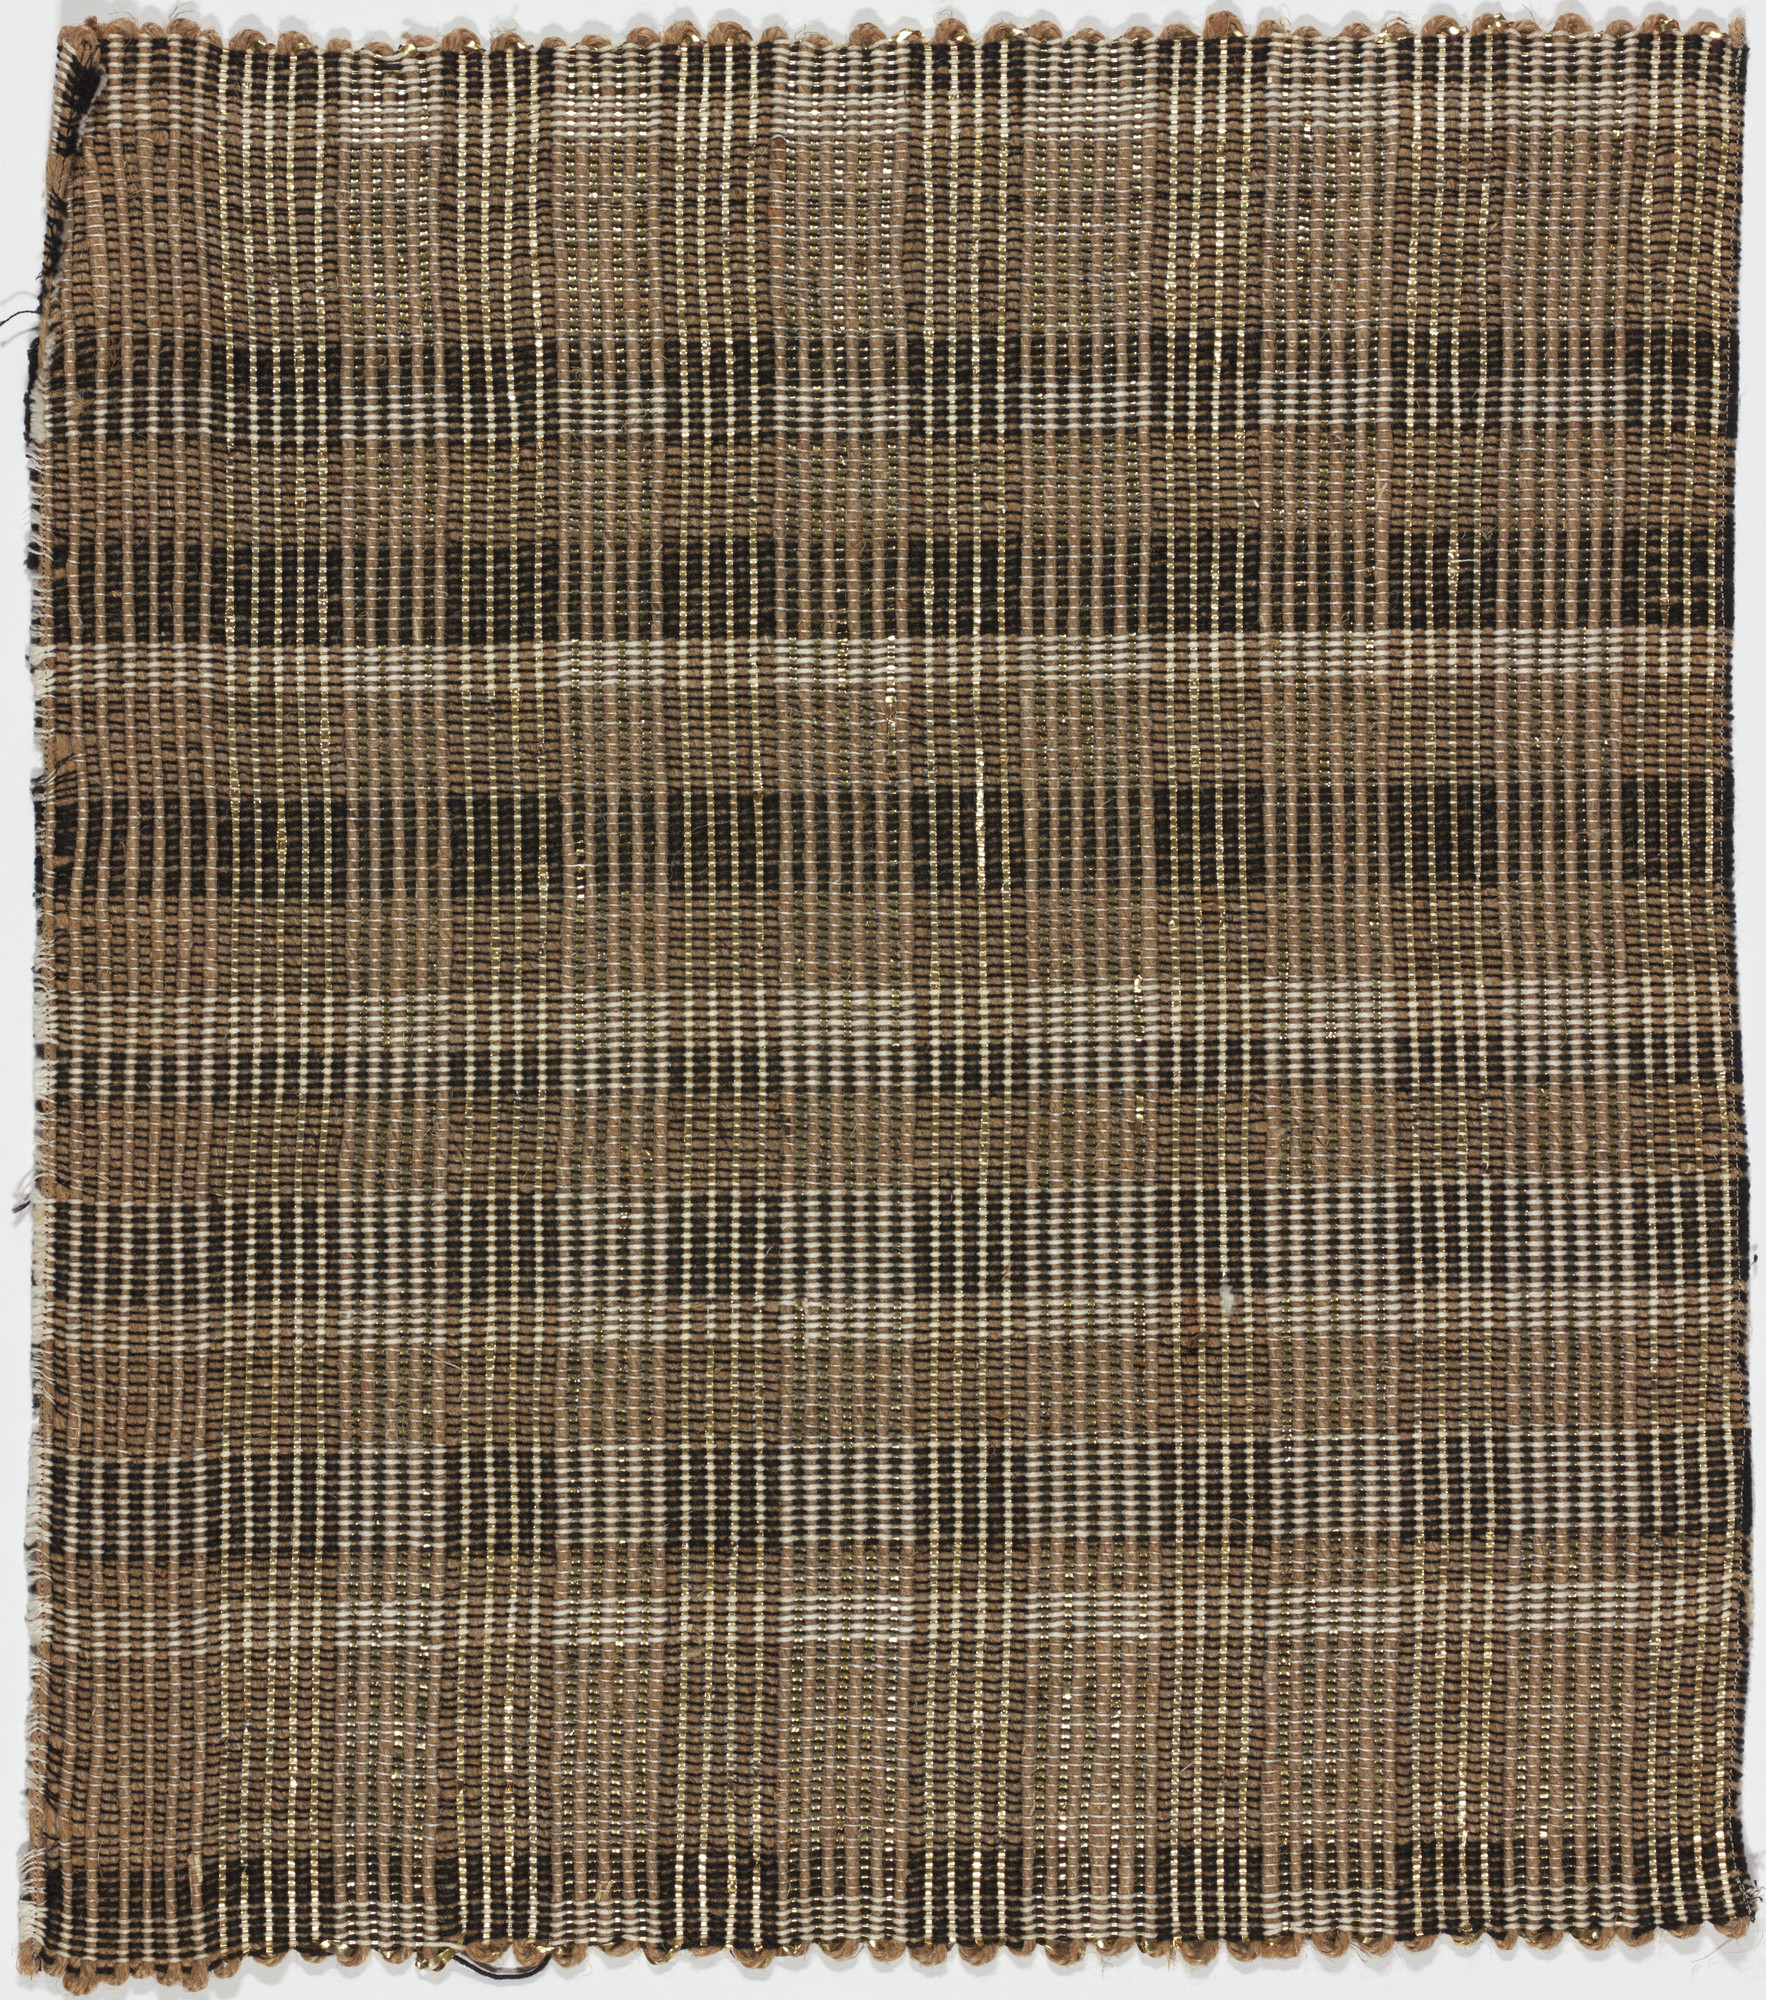 Anni Albers. Display-Fabric Sample. 1949